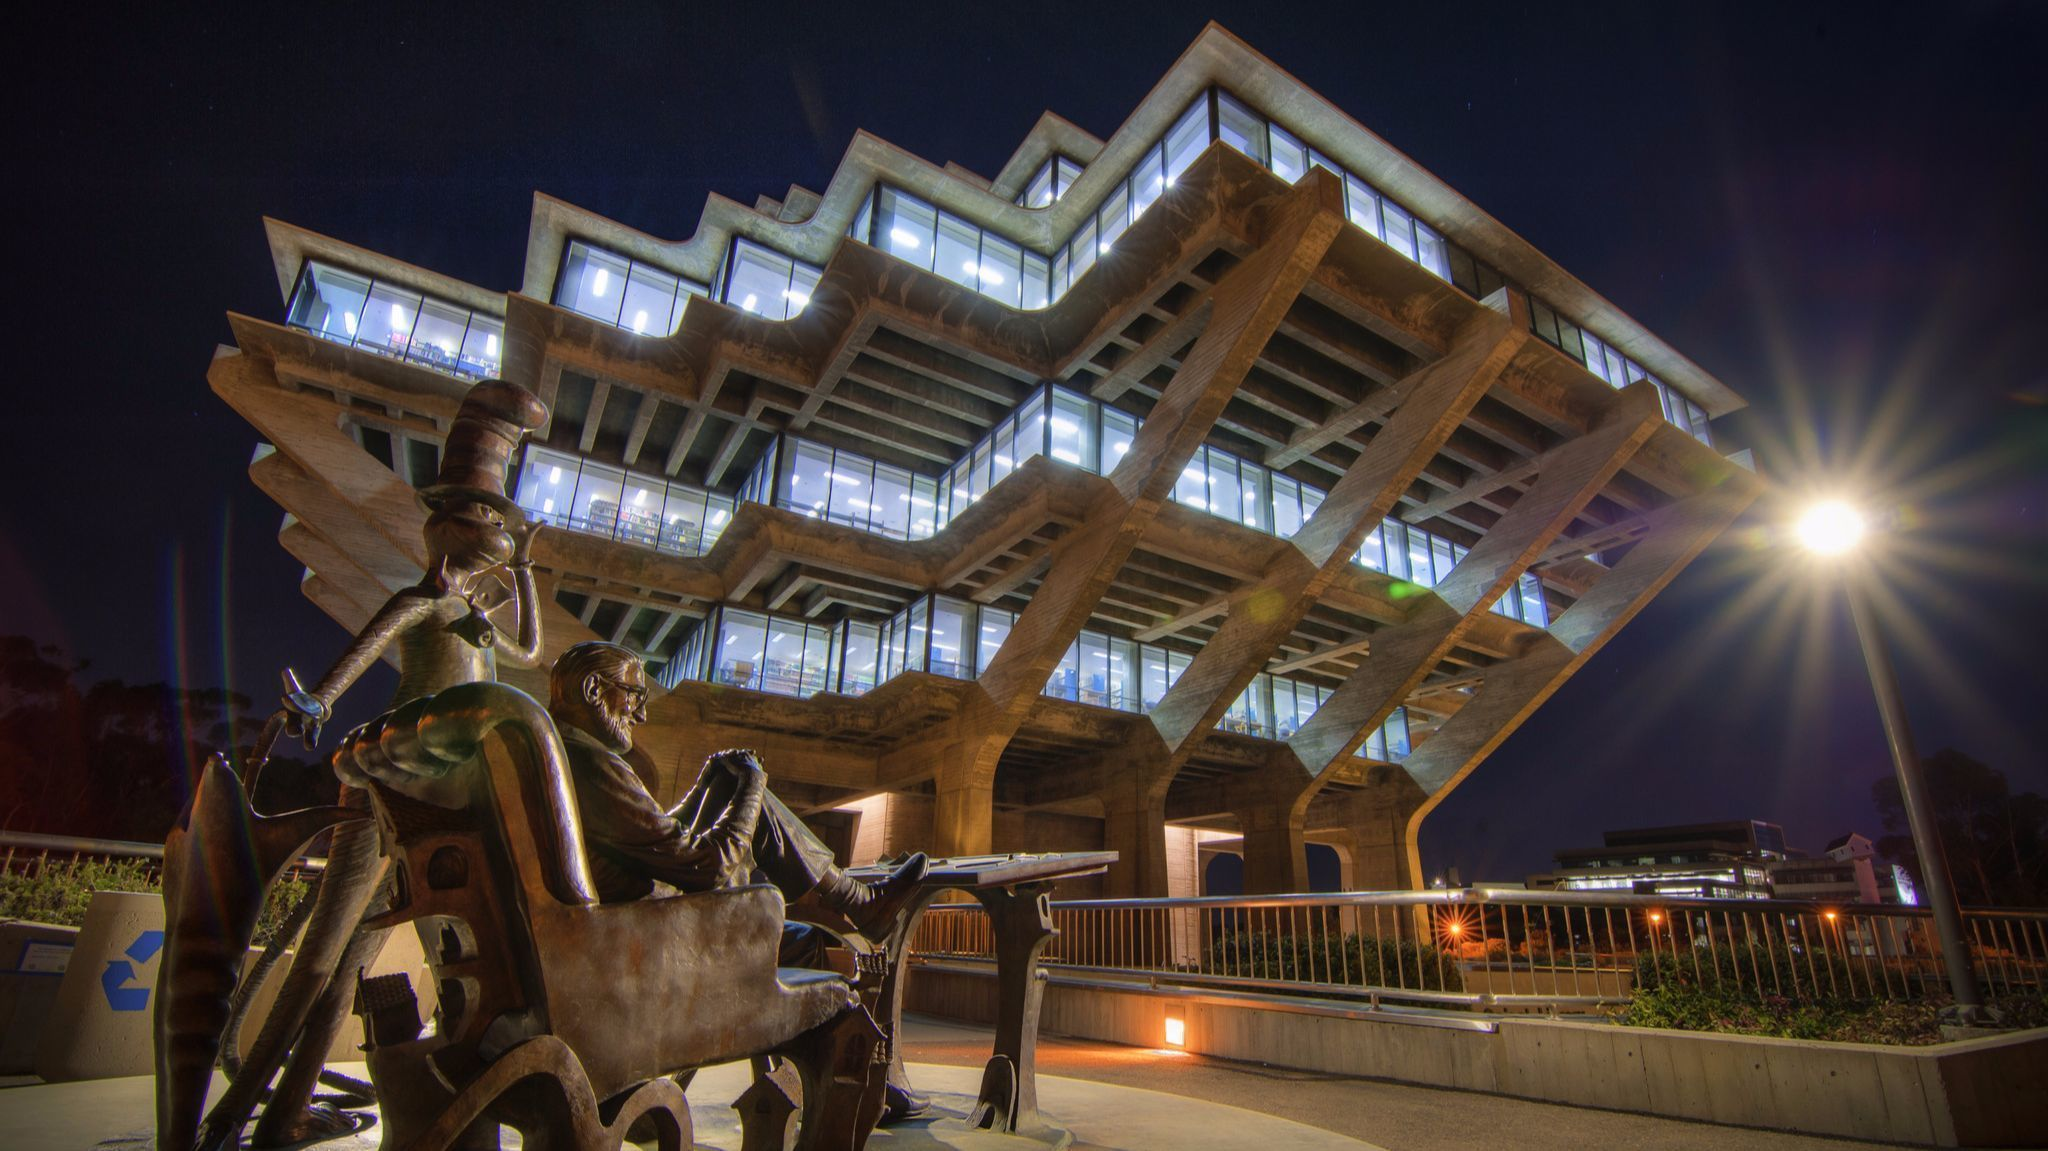 Uc san diego ranked 9th best in nation in annual report the san diego union tribune